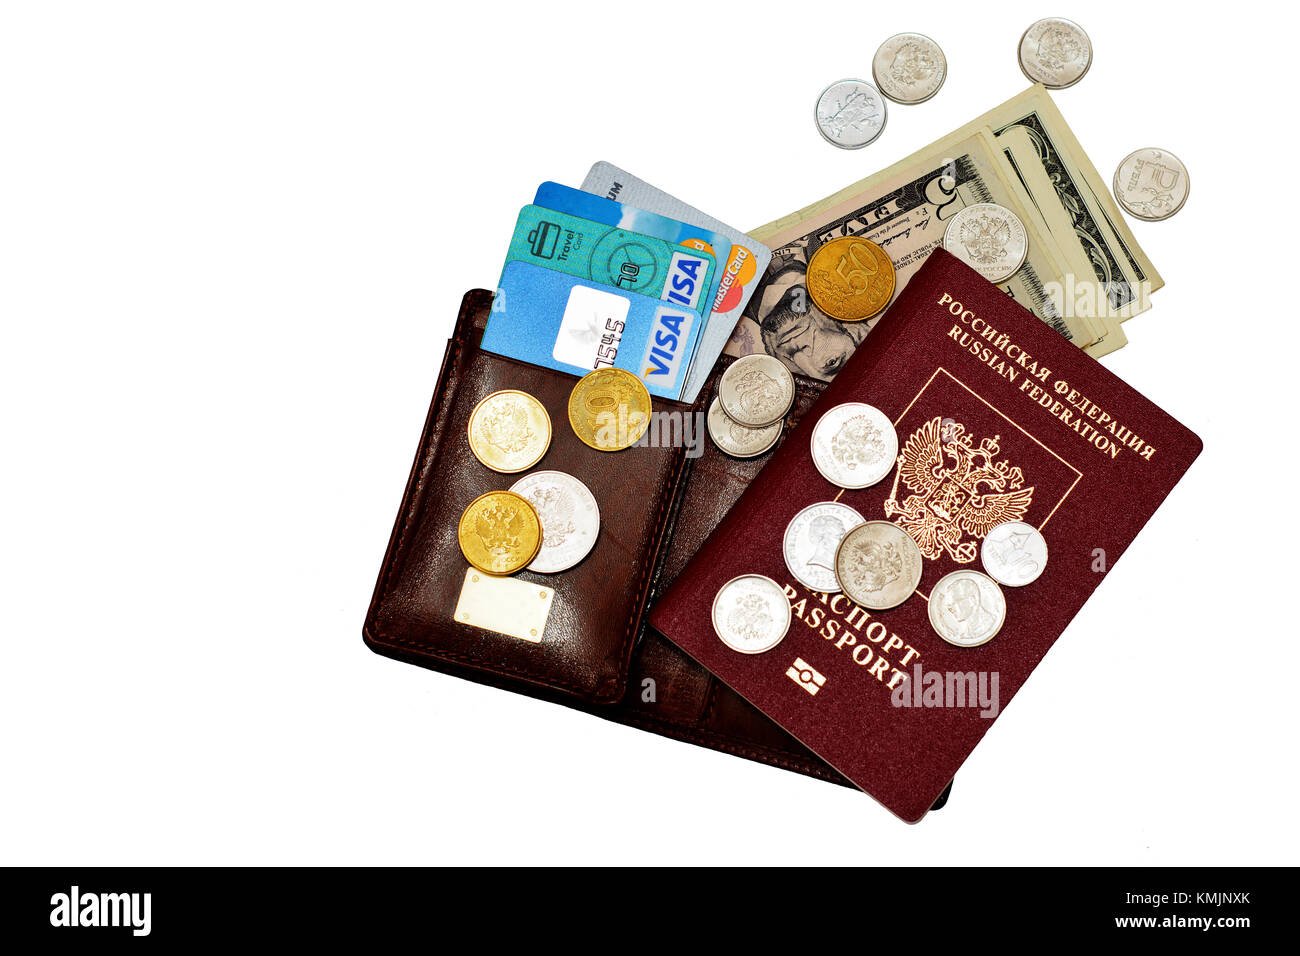 Passport number of credit cards and some cash, that's all you need for putishetviya world. Volgograd region, - Stock Image